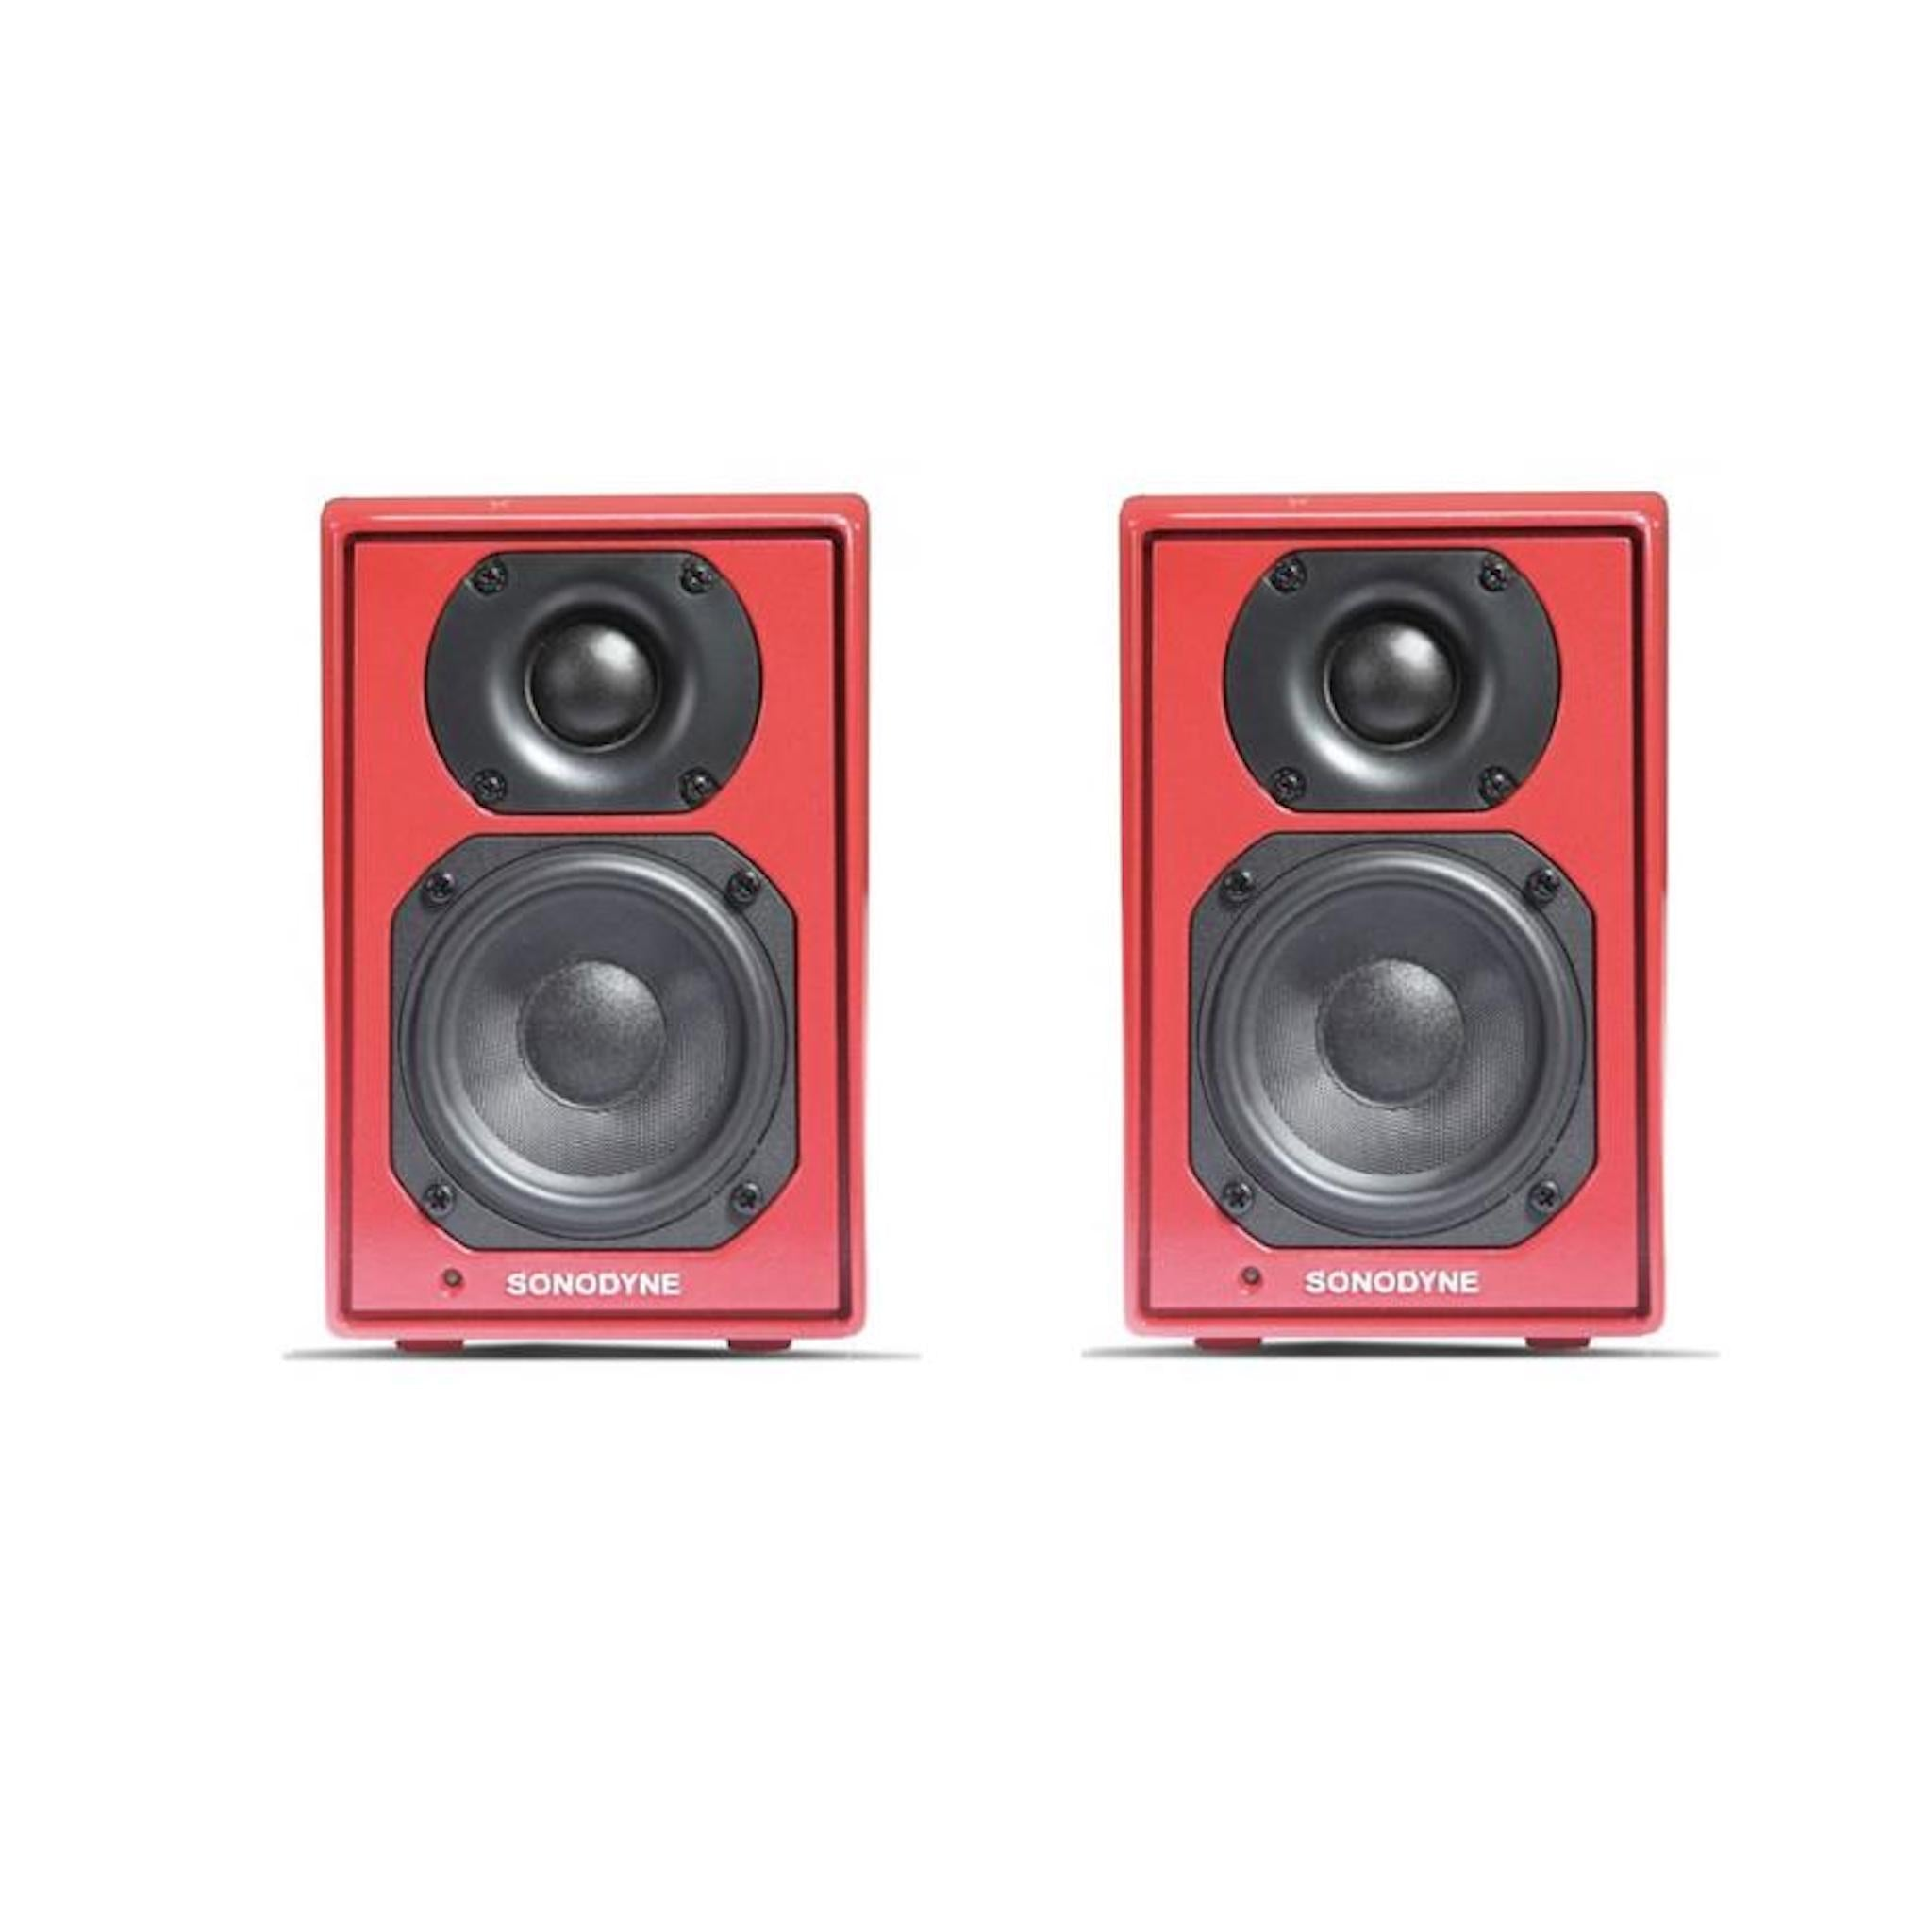 Sonodyne SRP 201 - Active Bookshelf Speaker - Pair, Sonodyne, Active Bookshelf Speaker - AVStore.in